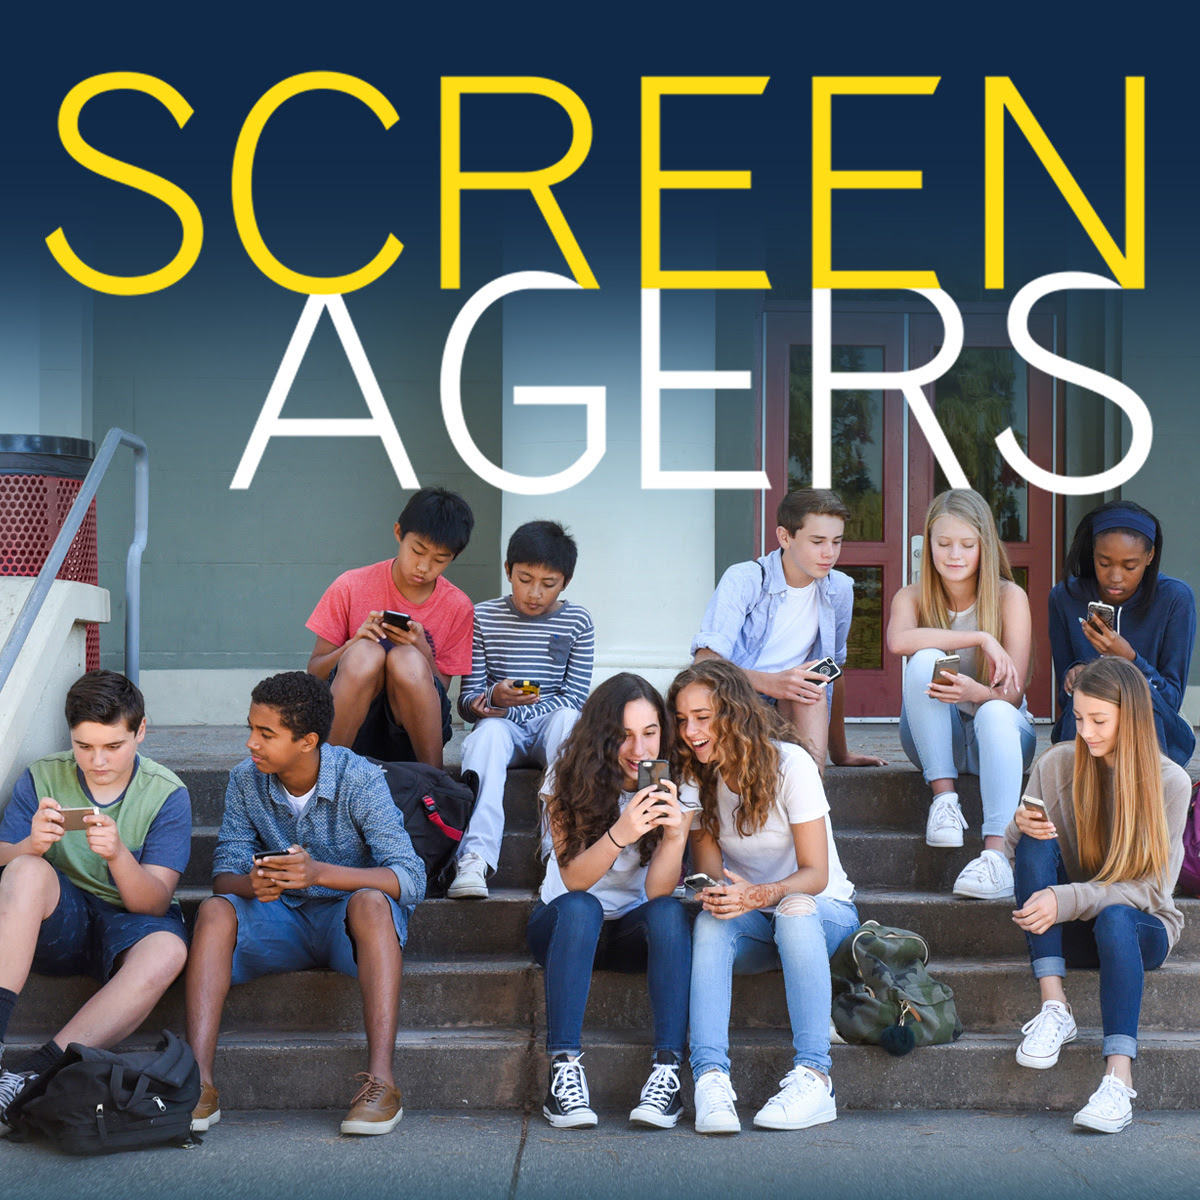 Screenagers Film Presented By School of the Future